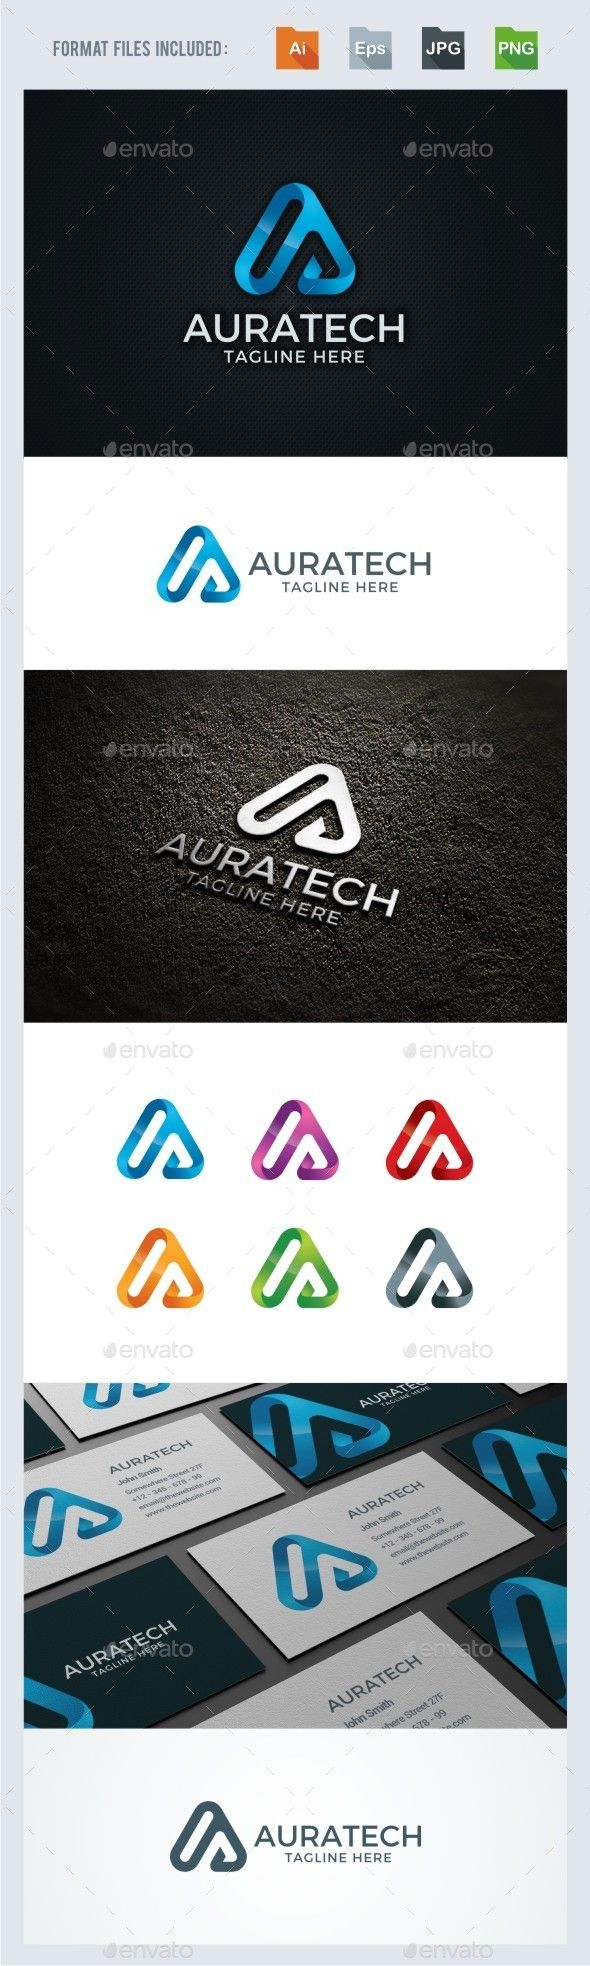 A Letter - Technology Logo Template by BeLoveArt A Letter  Technology Logo TemplateLogo is made with vectors for easy resizing and customizing  all texts can be rewritten even You